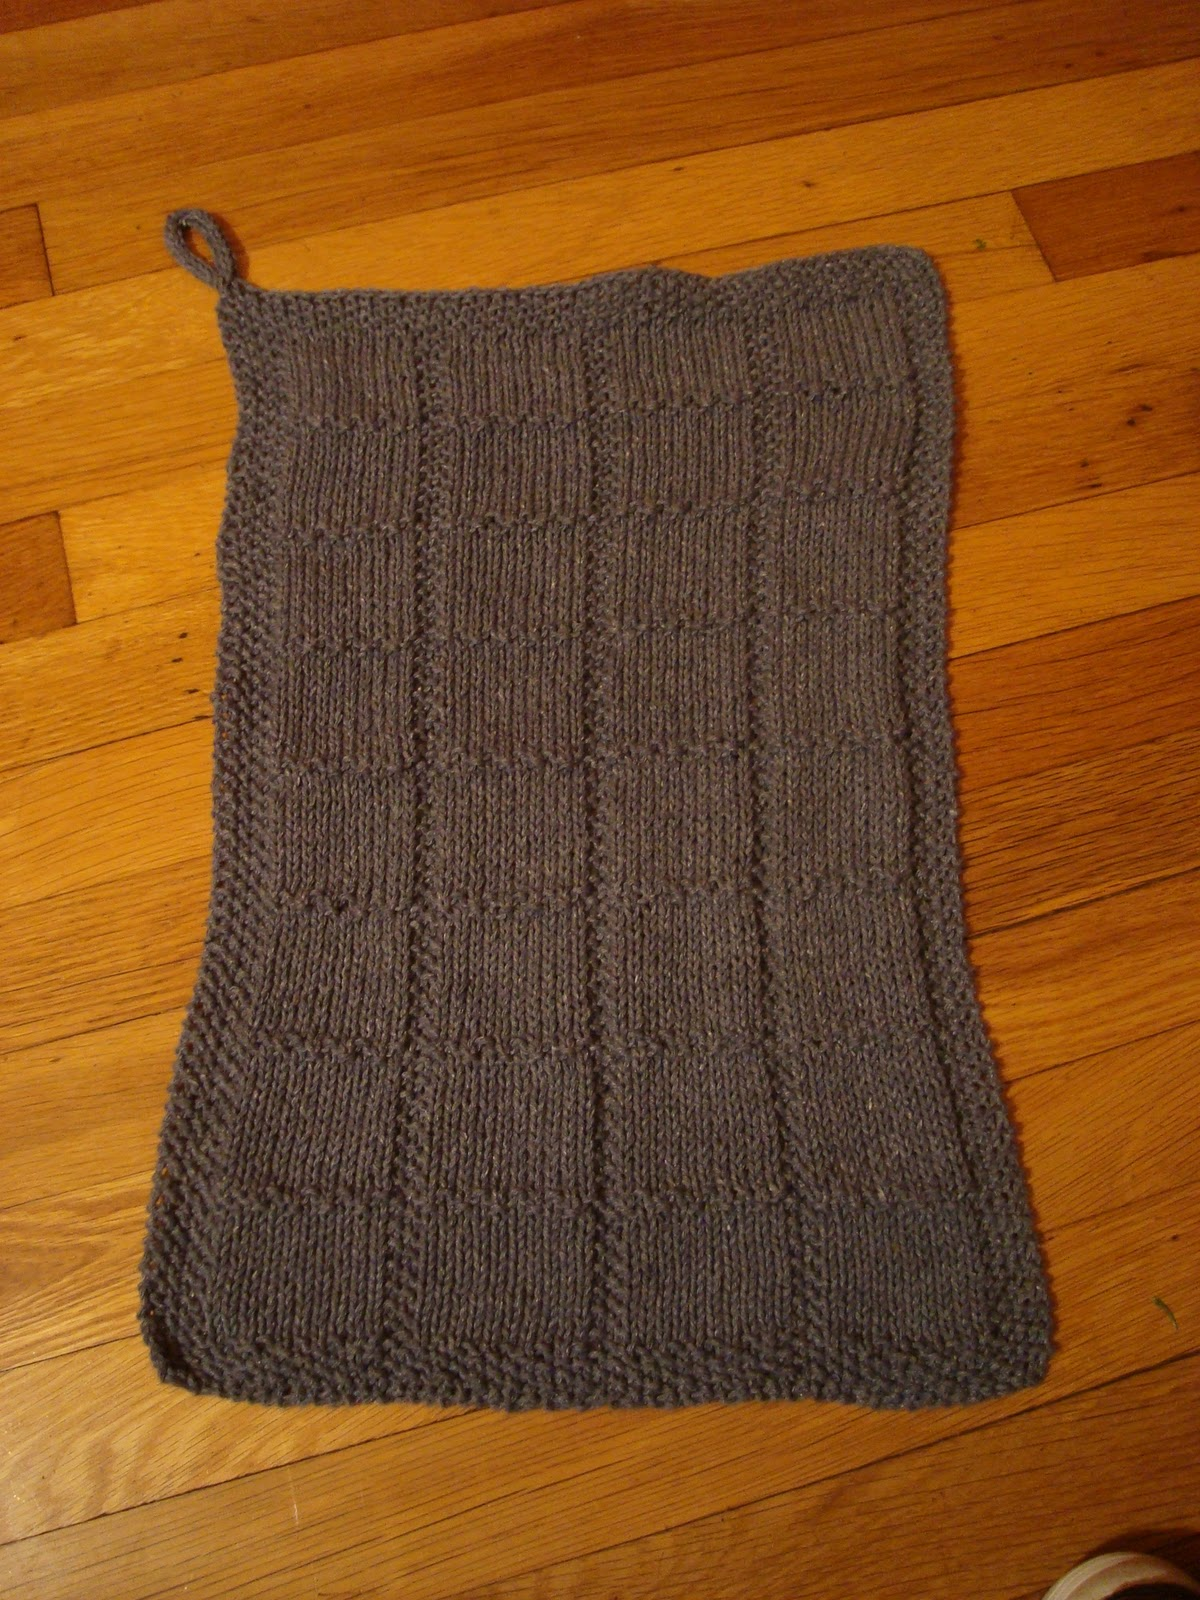 I-need-a-break-from-Christmas-knitting-hand-towel-pattern